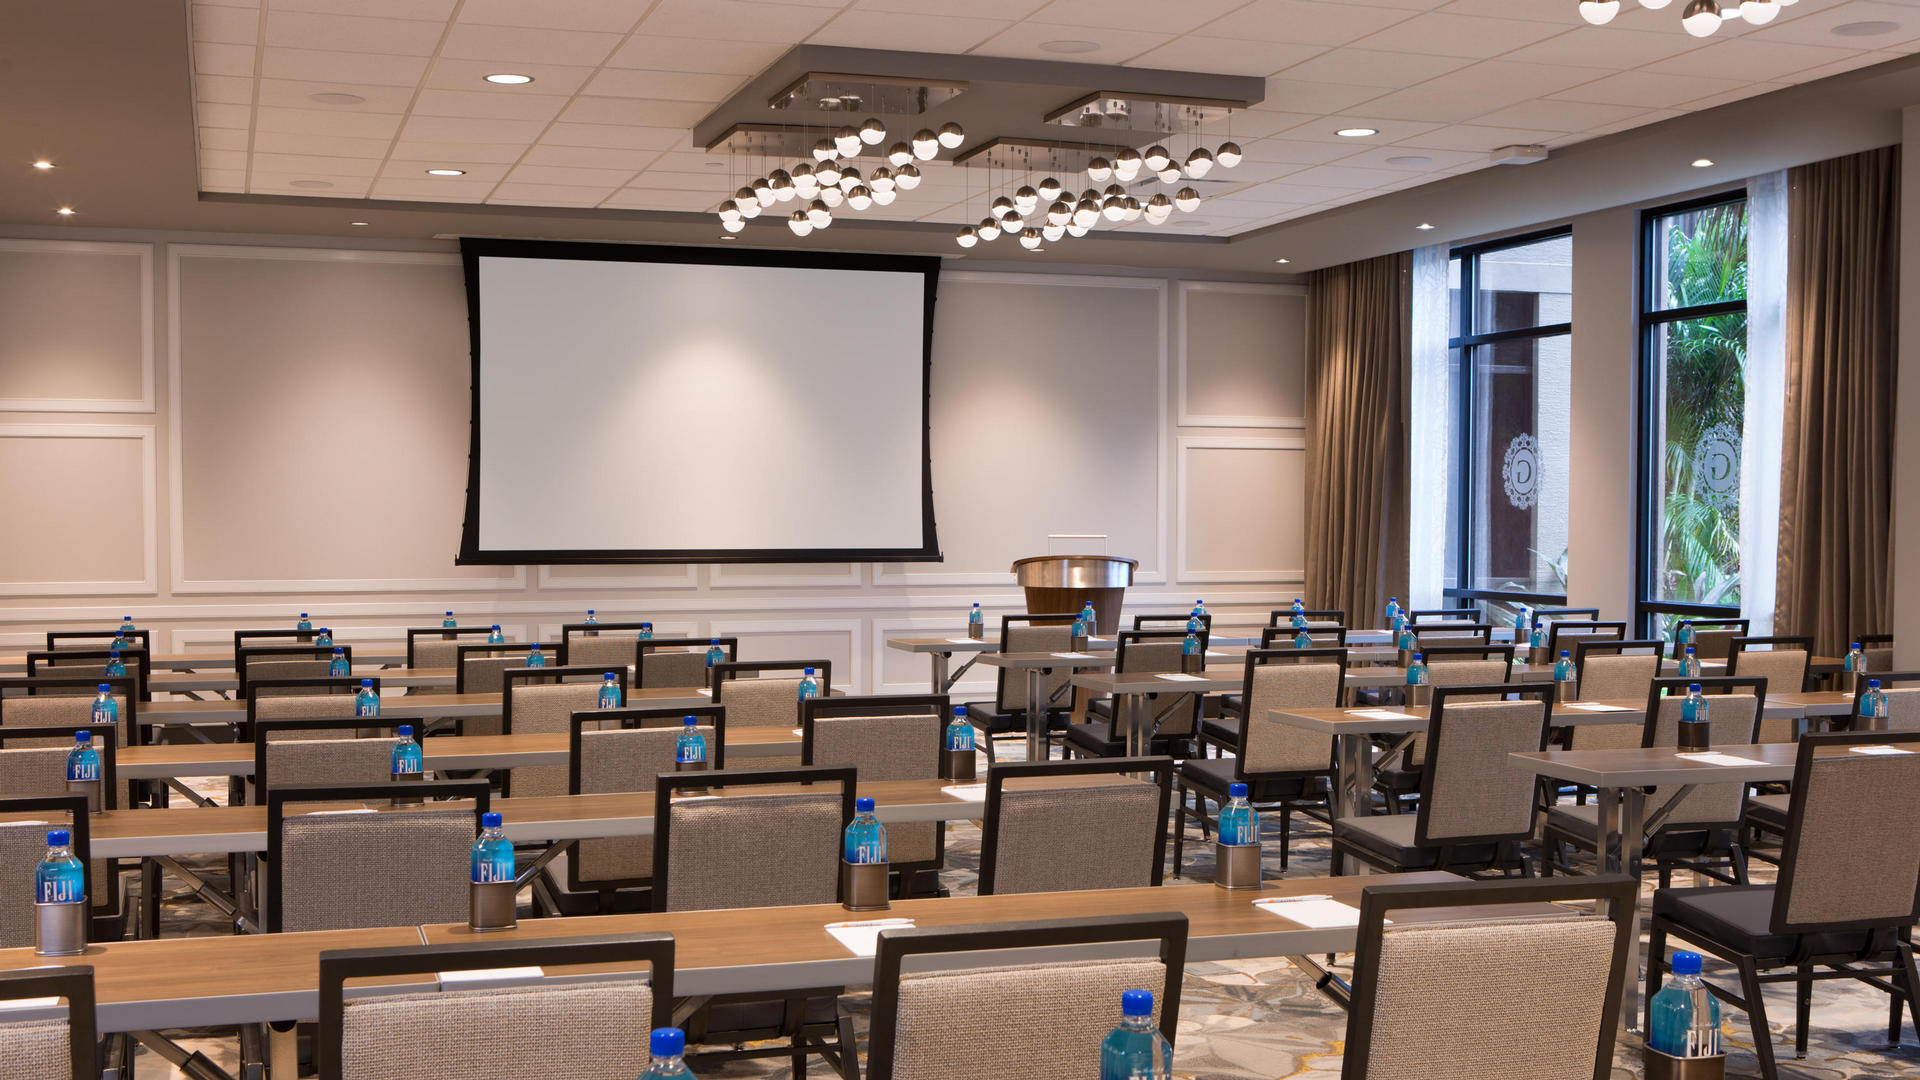 large meeting room with tables and a projection screen at the front